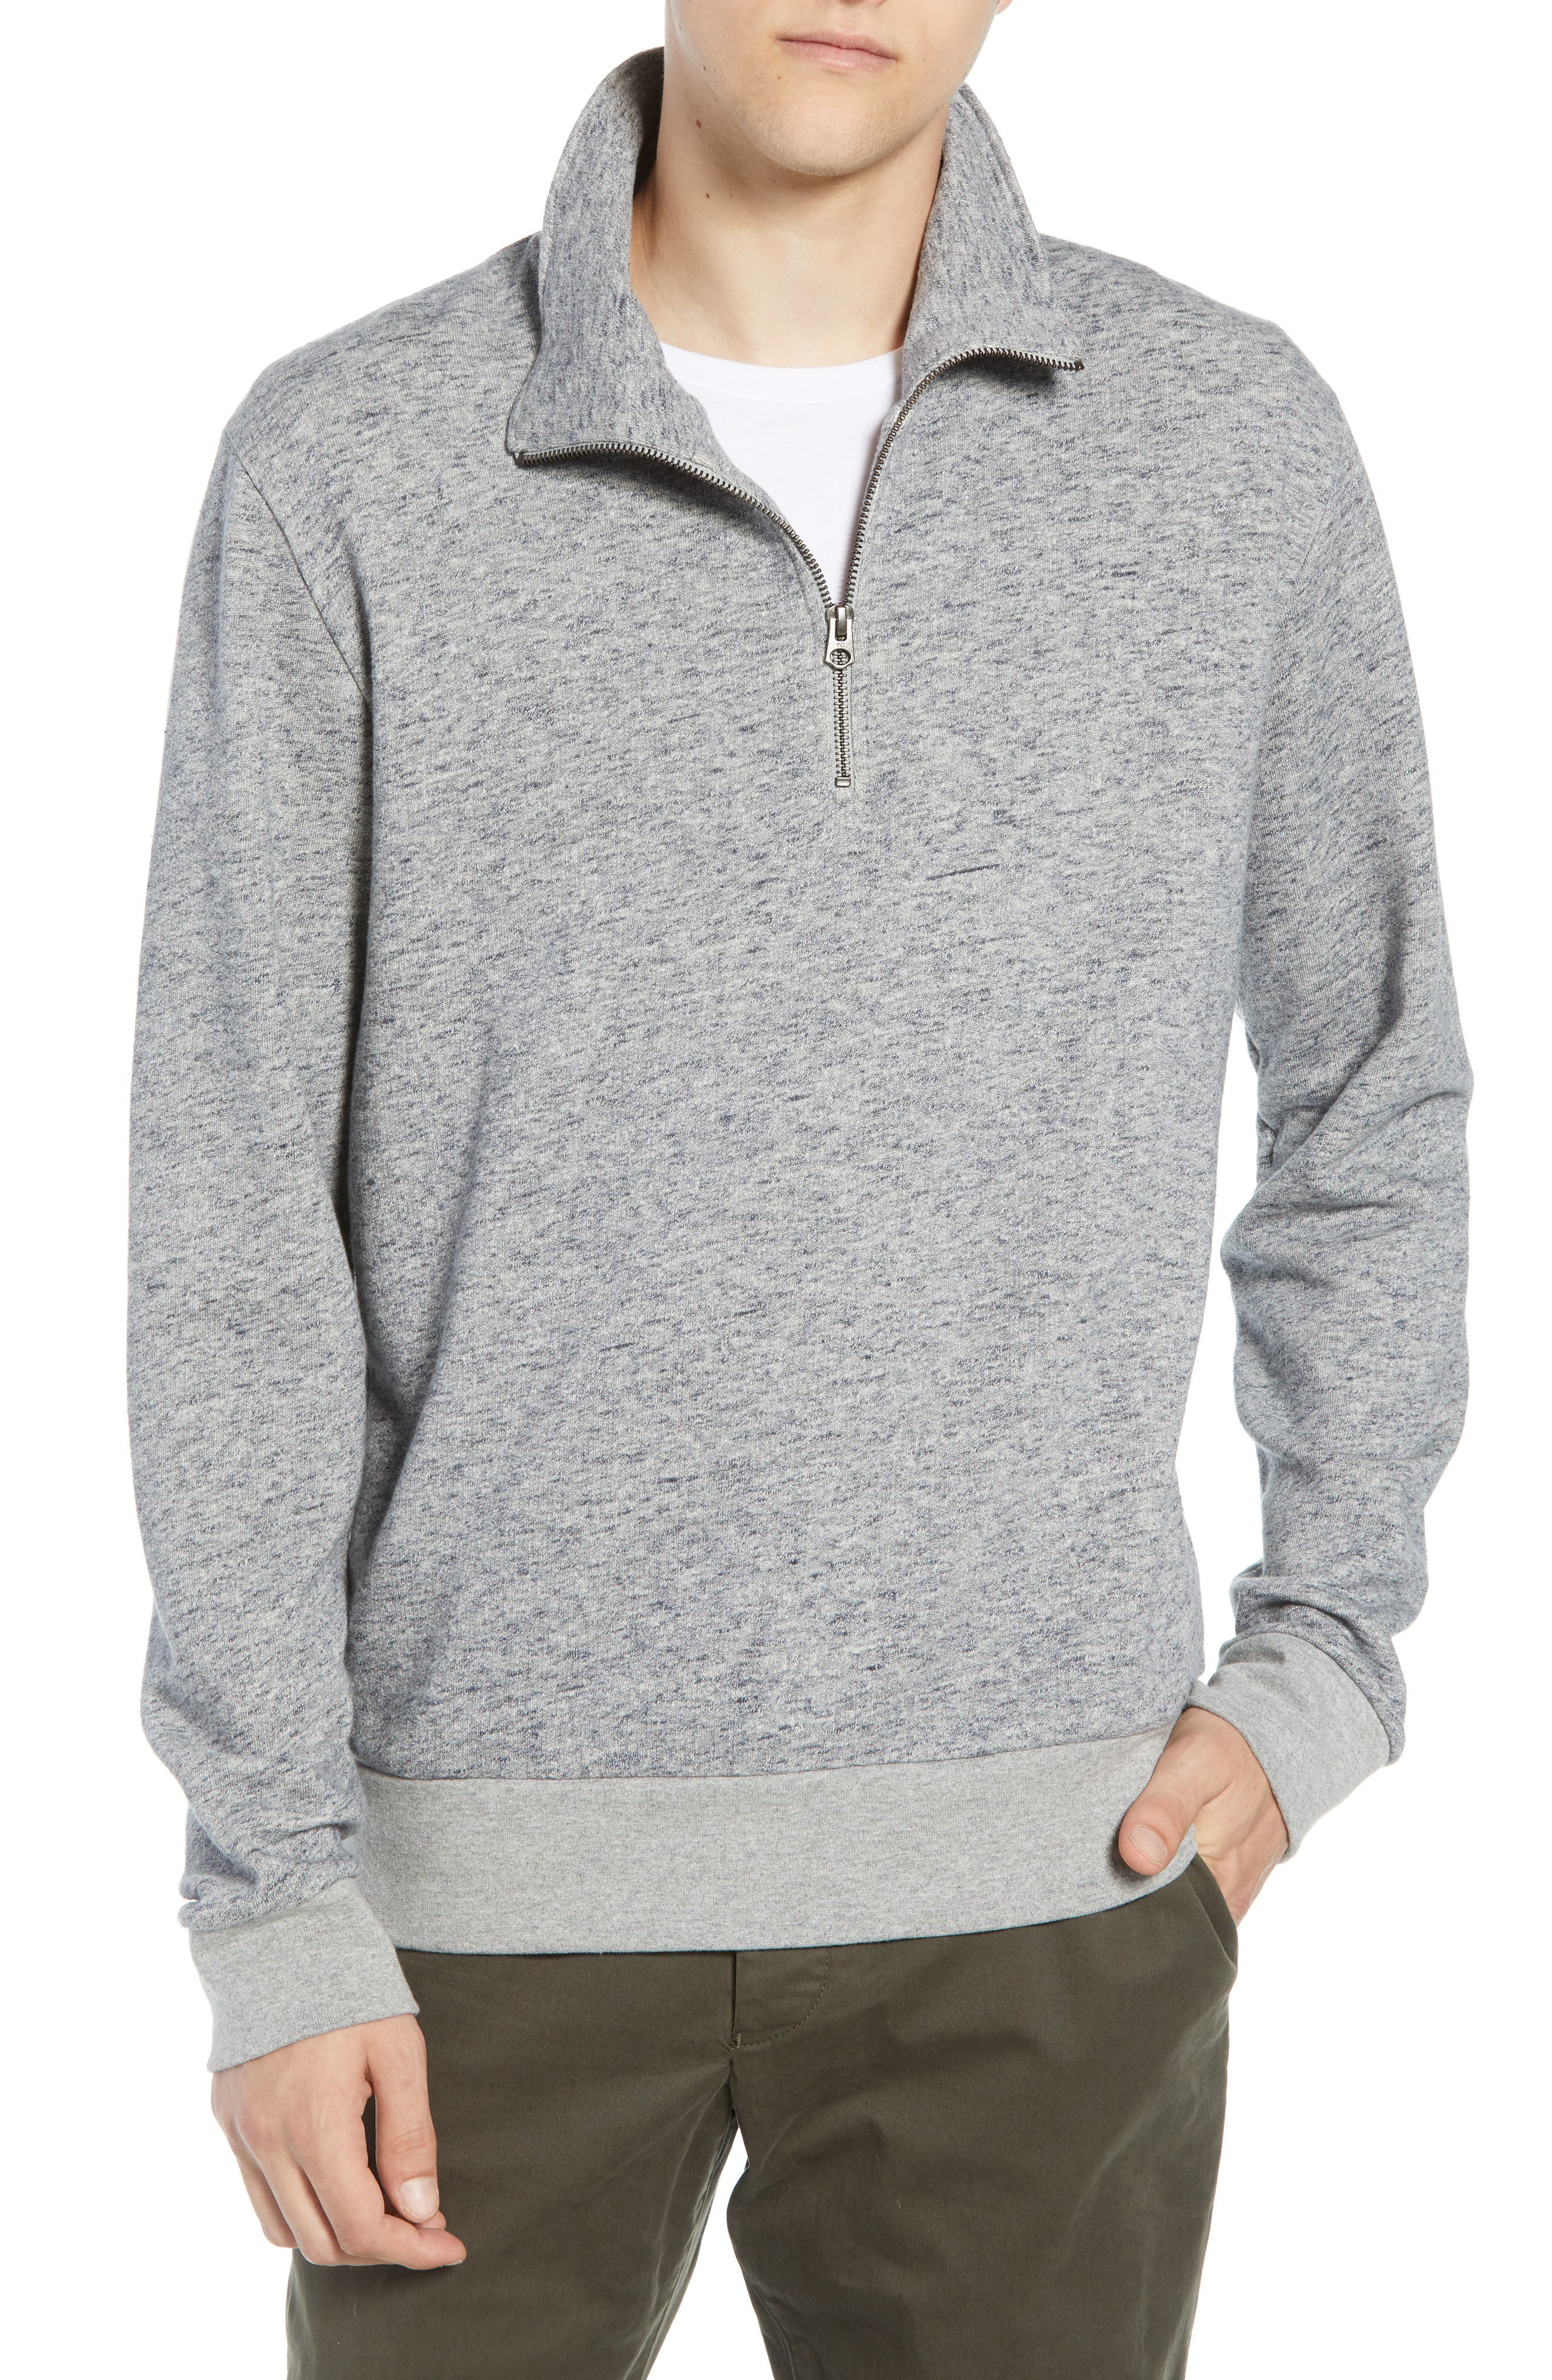 Winning Quarter Zip Regular Fit Sweatshirt,                             Main thumbnail 1, color,                             GREY MOULINE